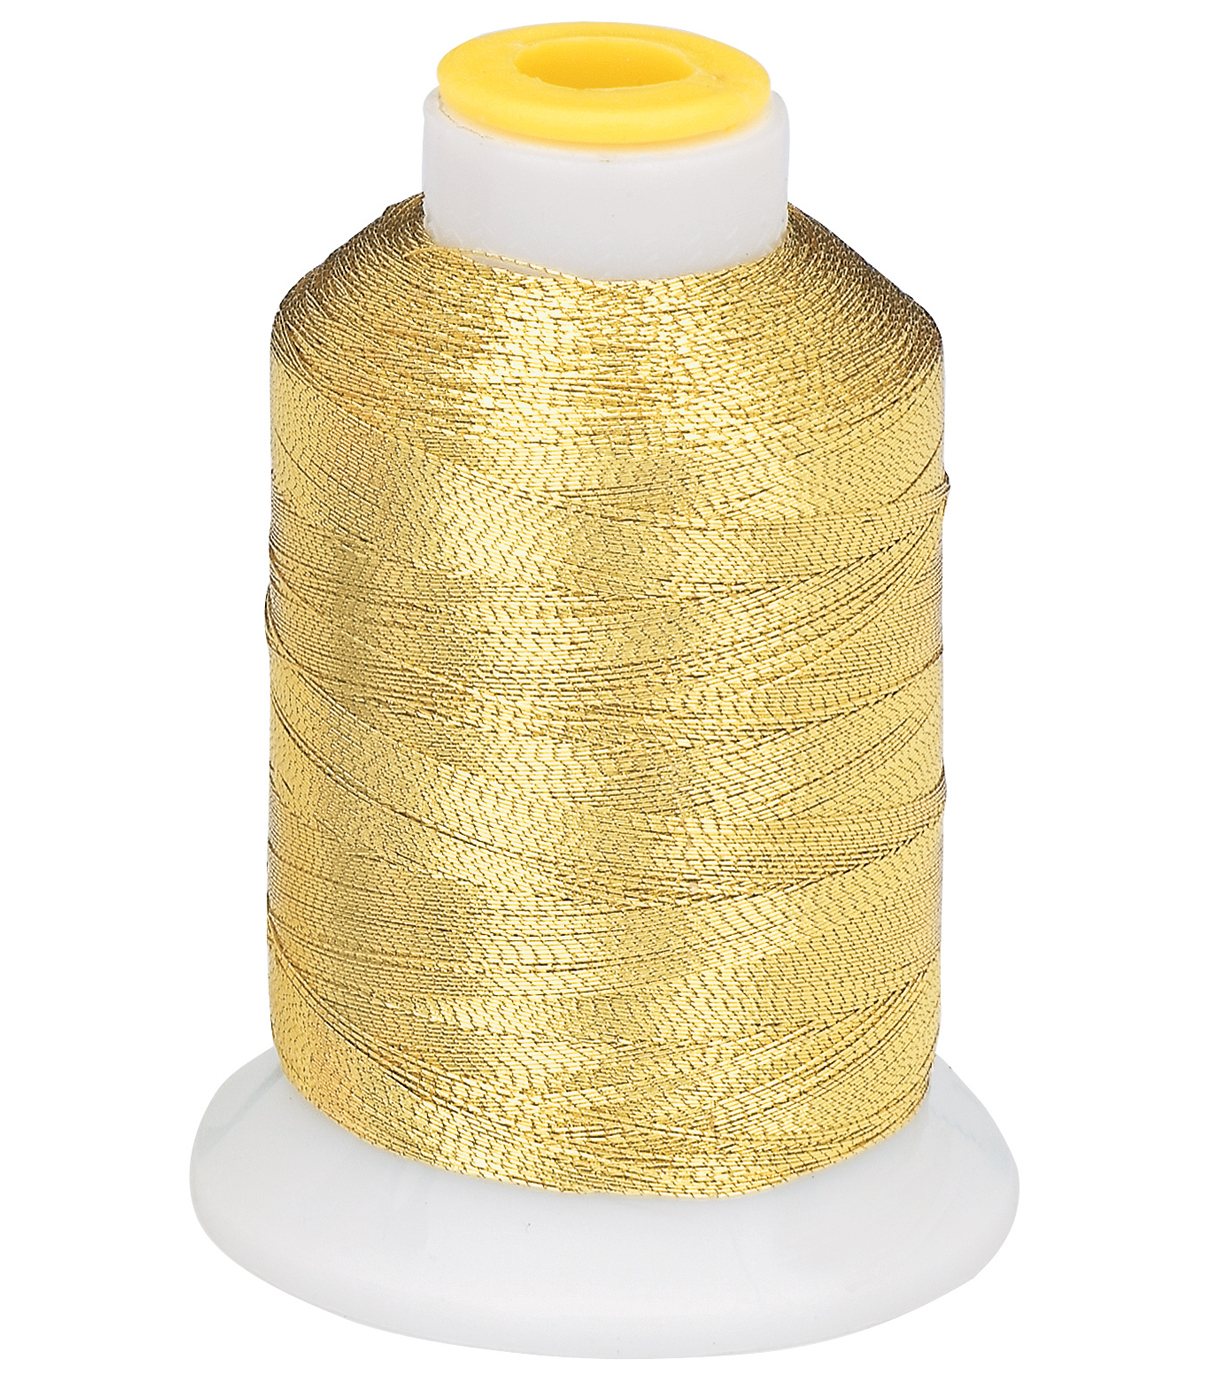 Coats & Clark Metallic Embroidery Thread, Metallic Br. Gold Embroidery T